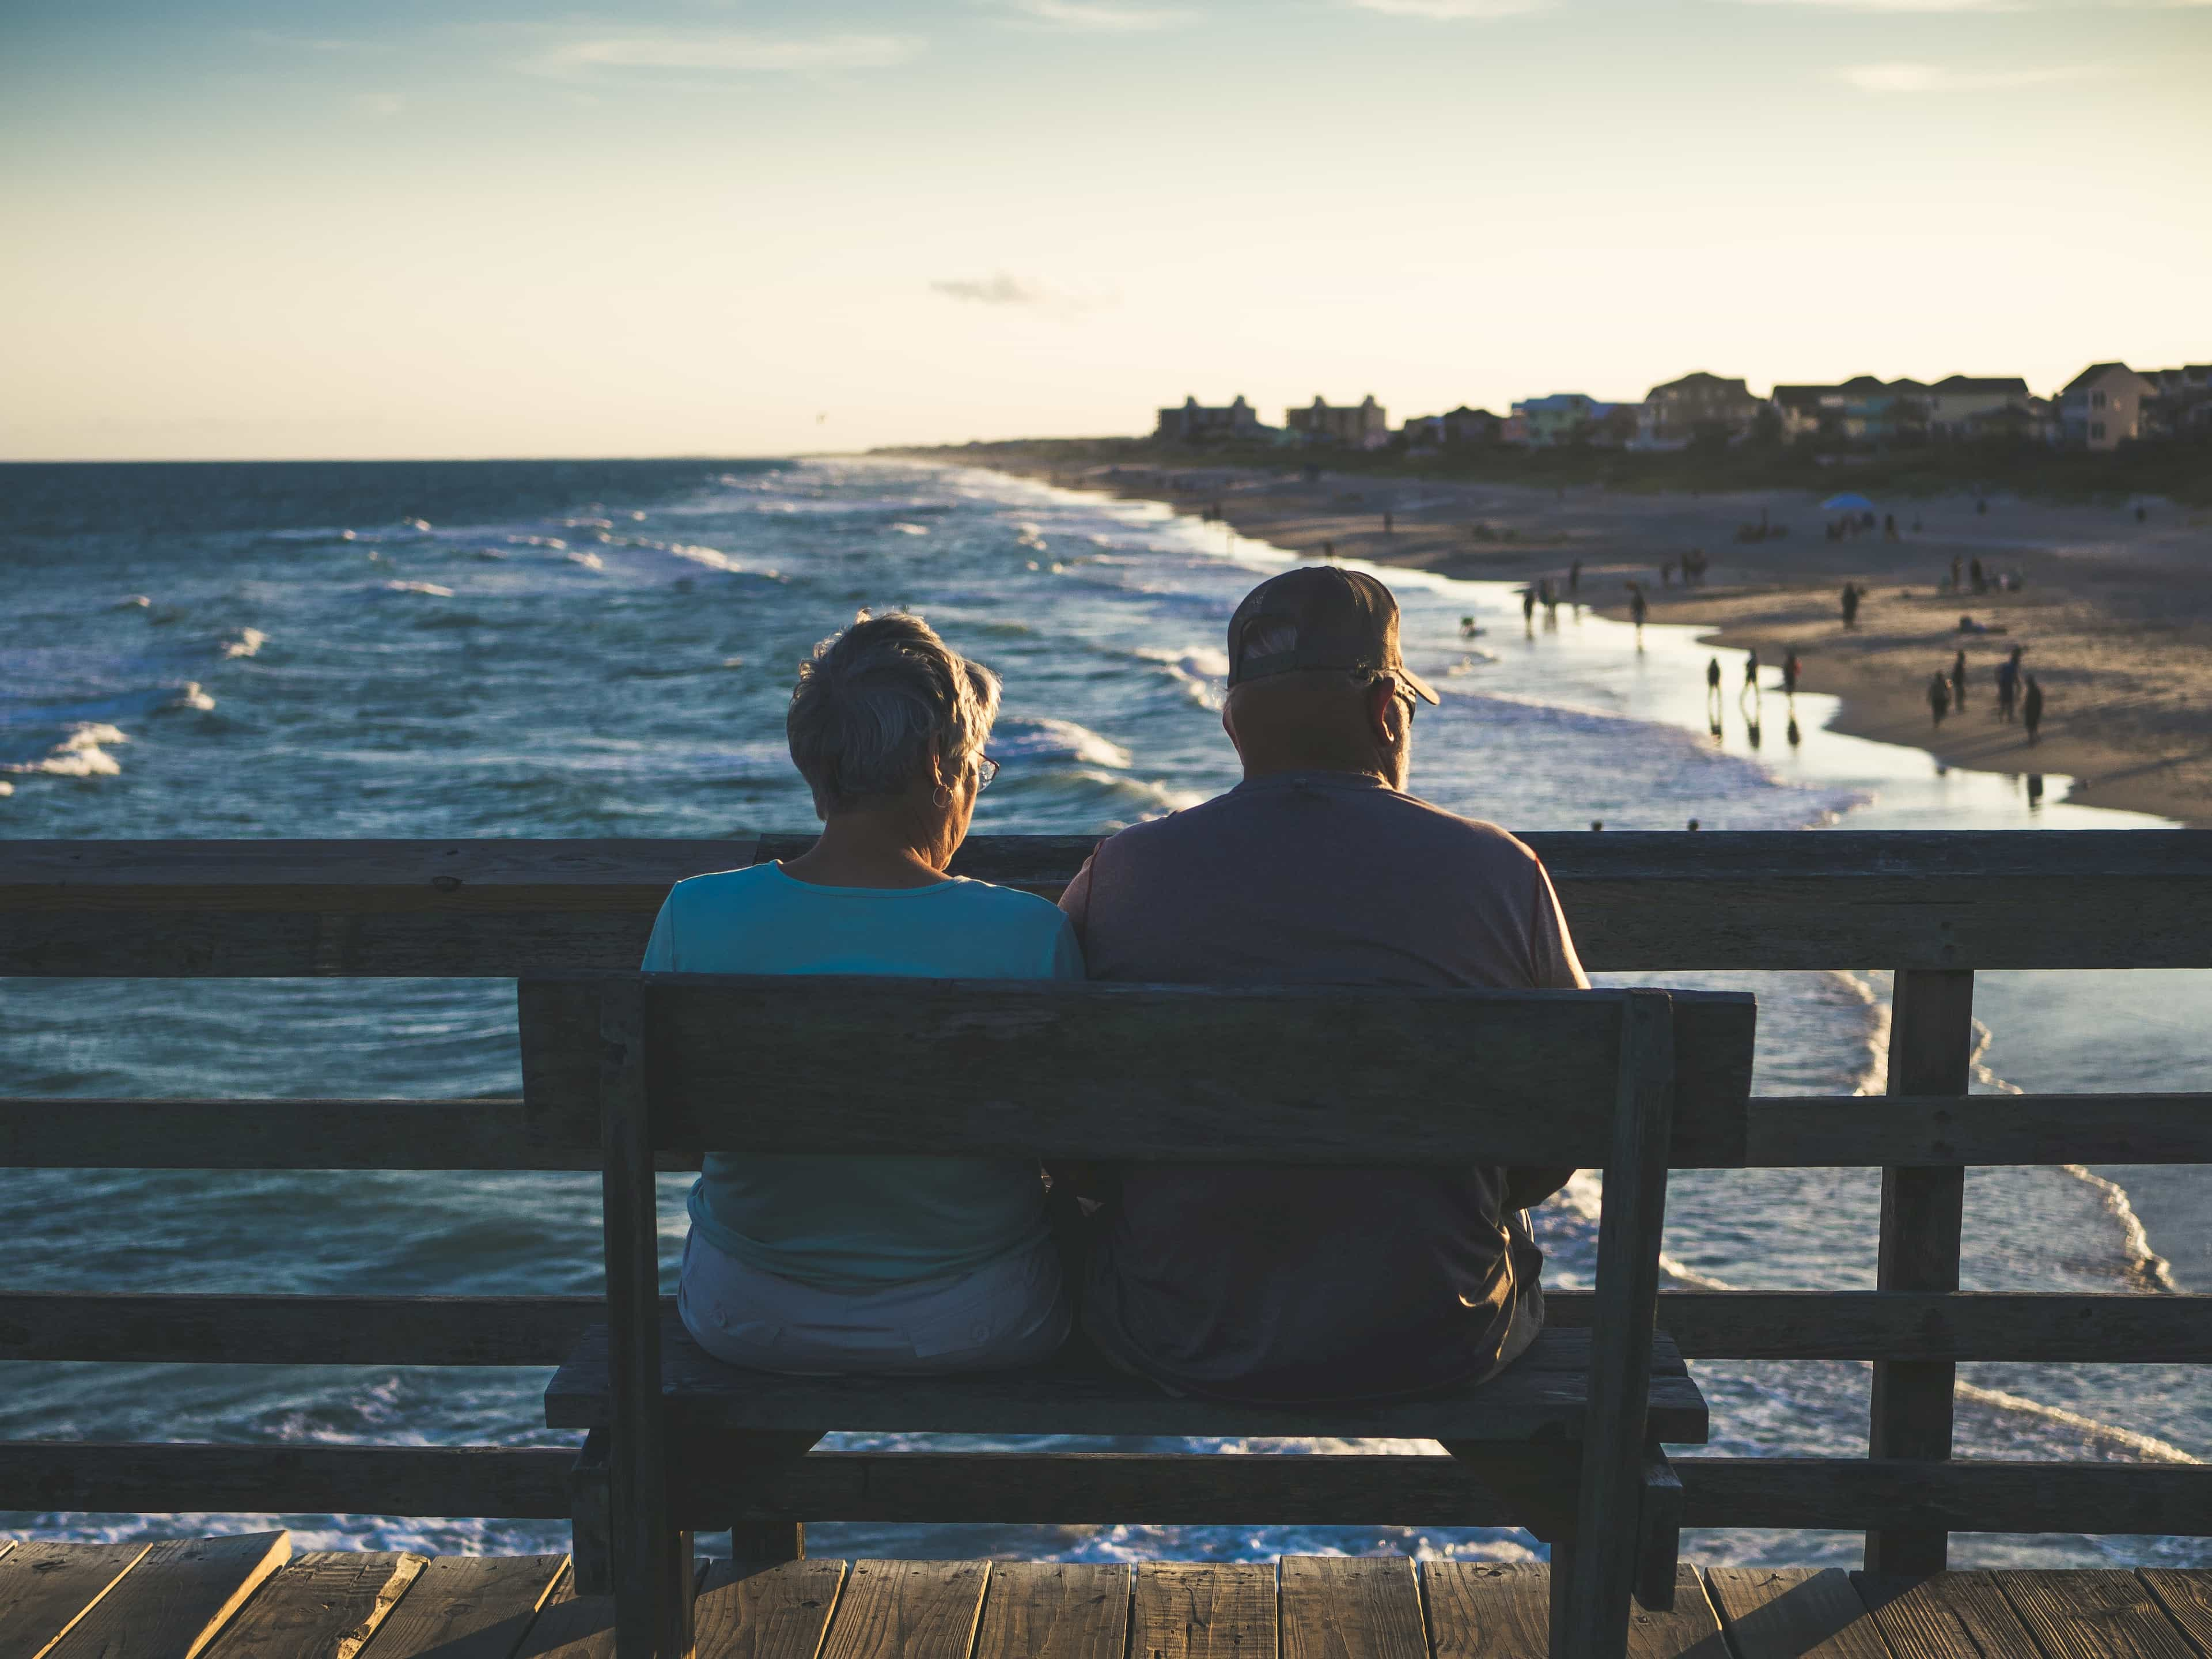 Elderly man and woman watching beach